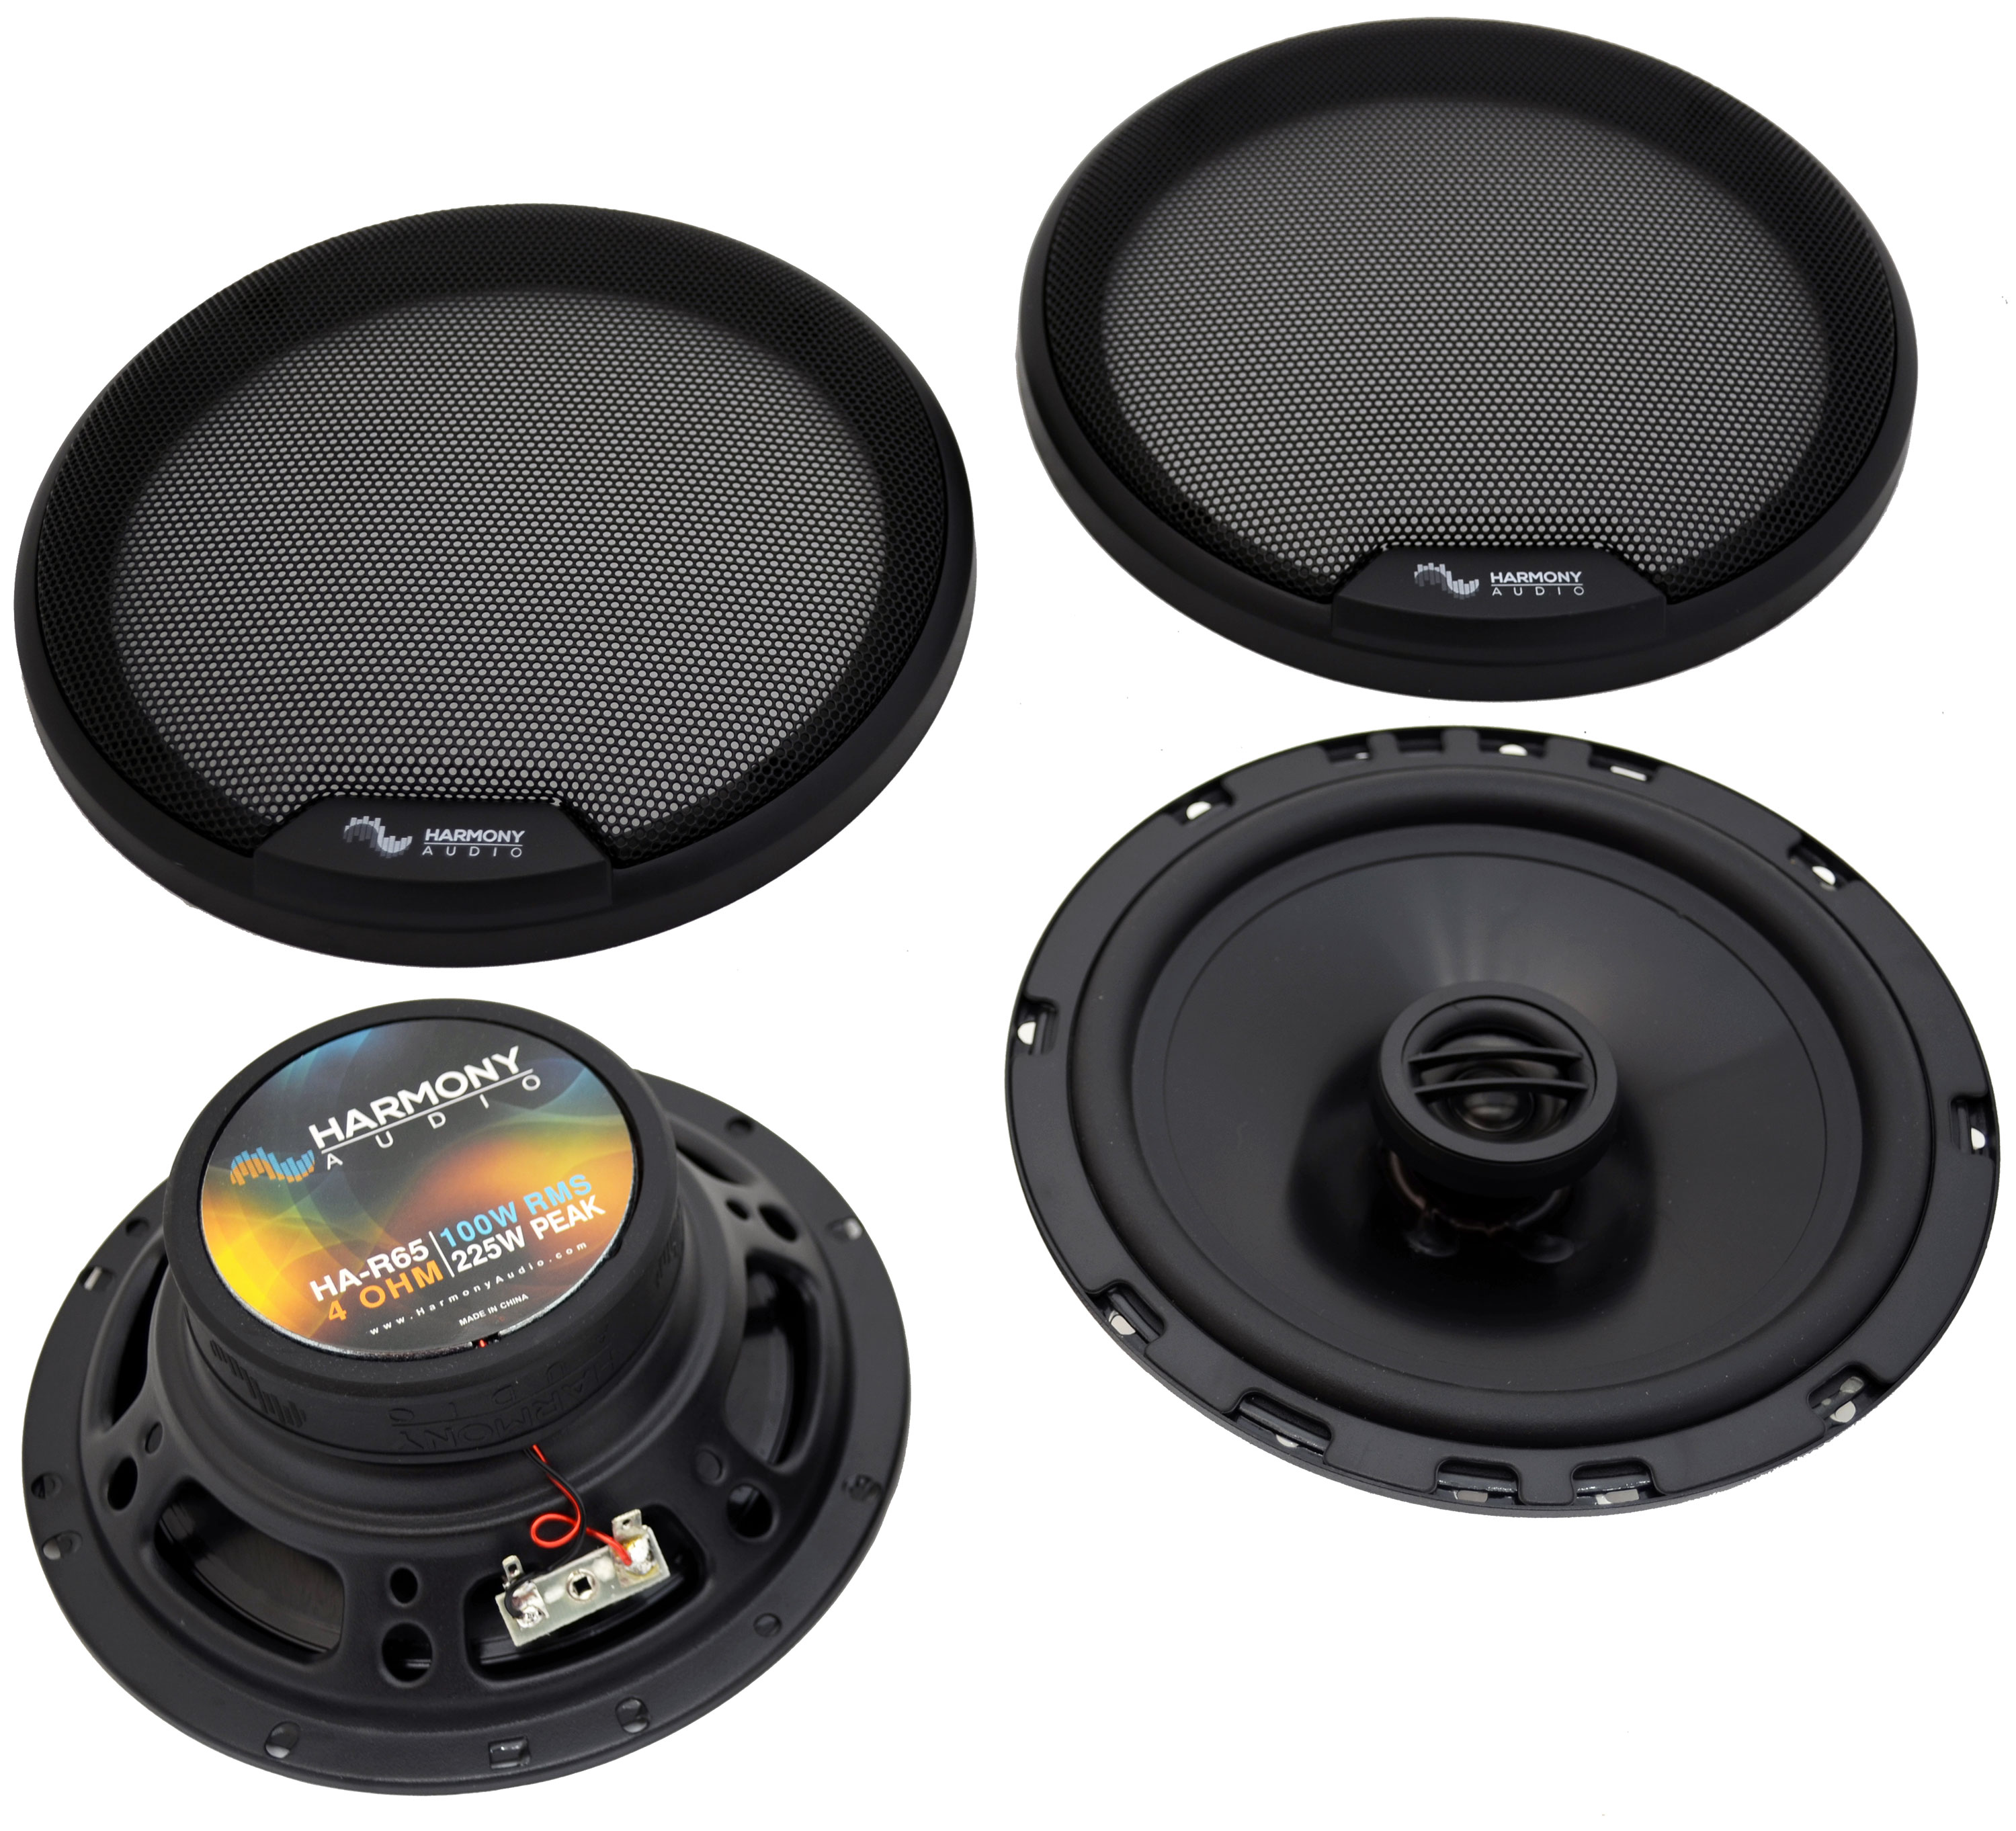 Fits Acura RSX 2002-2006 Rear Side Panel Replacement Speaker HA-R65 Speakers New